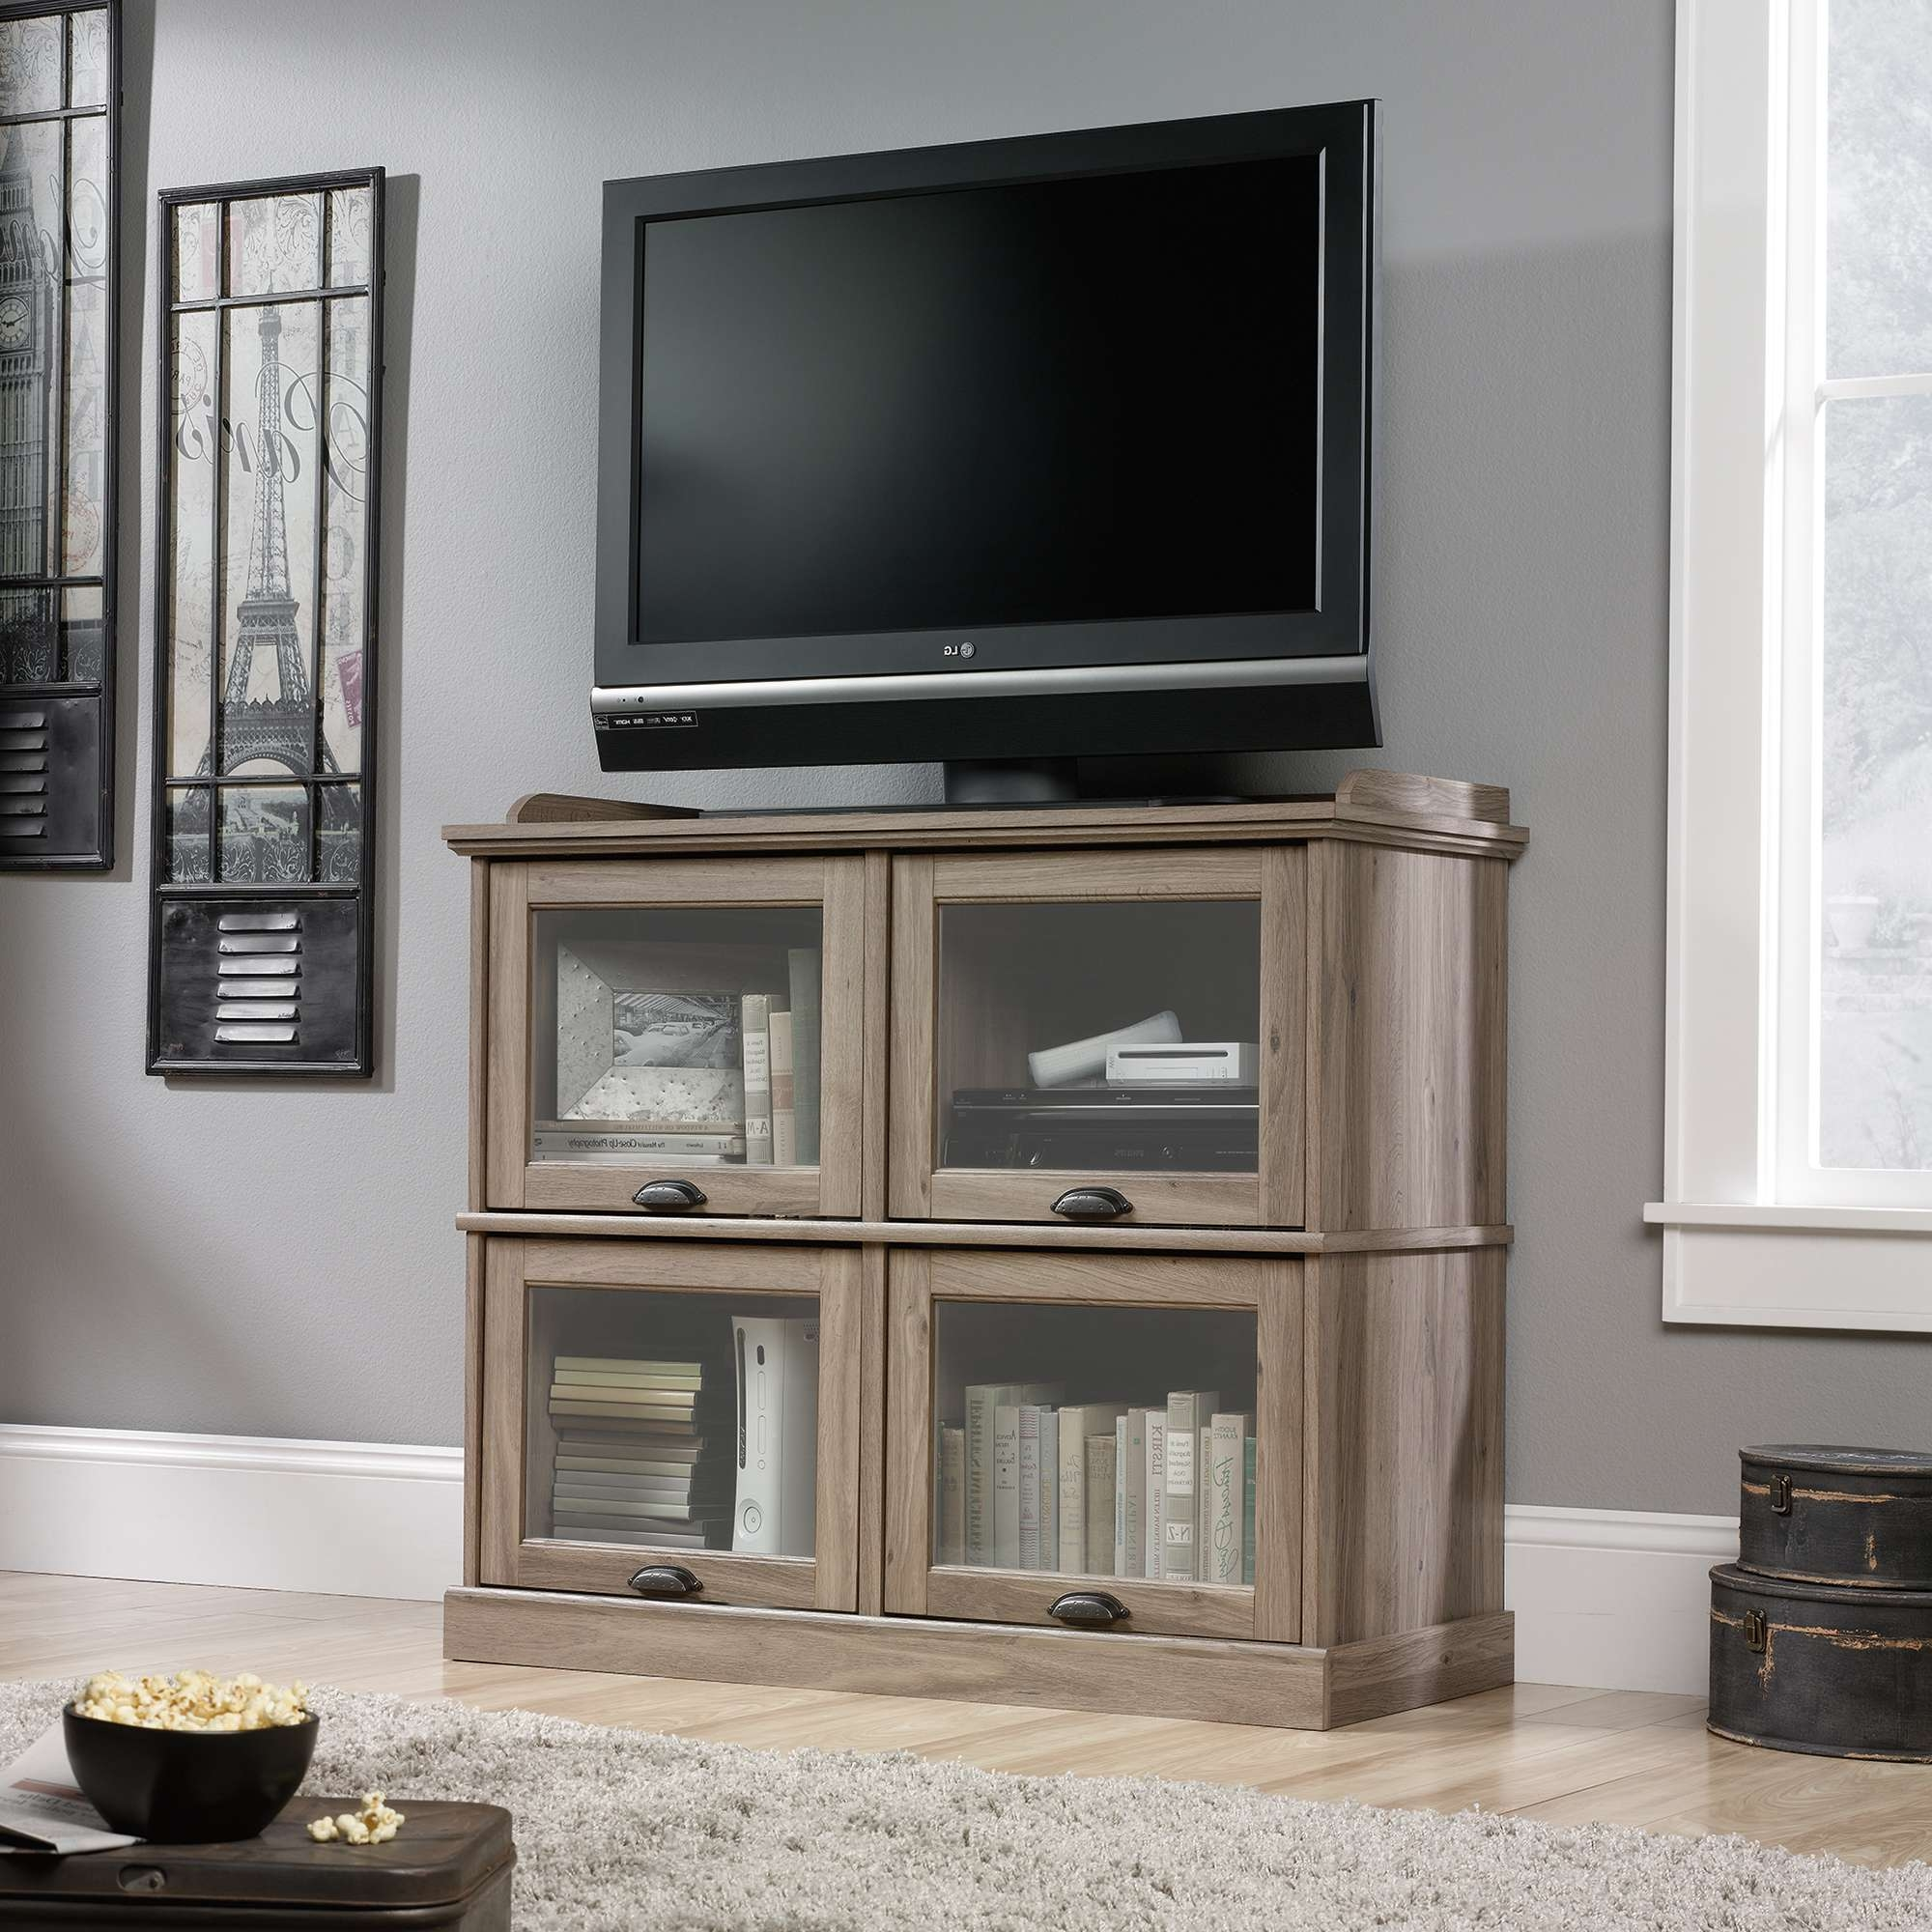 Barrister Lane | Highboy Tv Stand | 414720 | Sauder Inside Highboy Tv Stands (View 3 of 15)